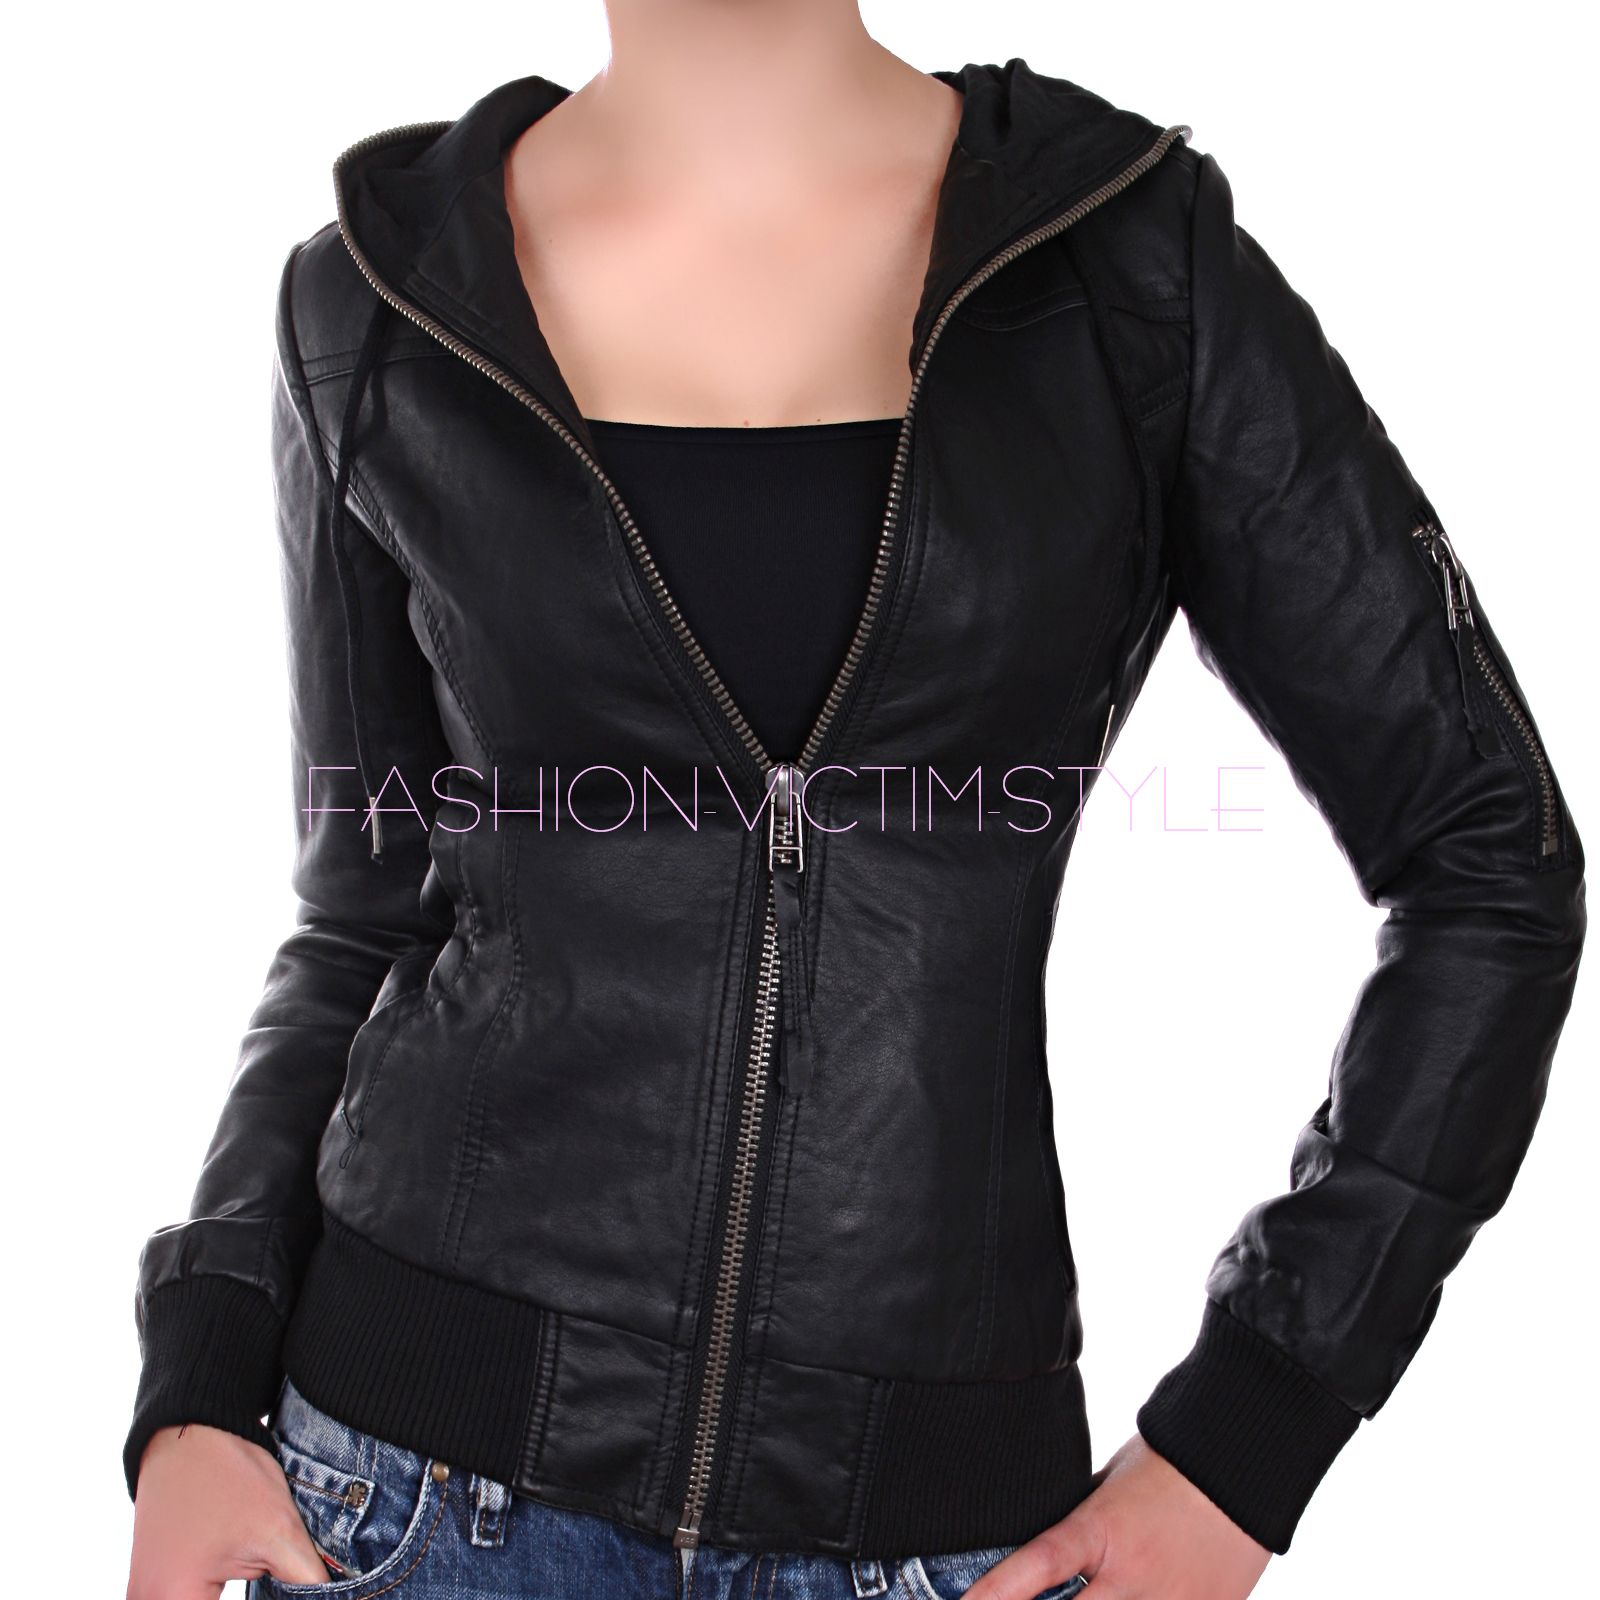 damen kunst lederjacke biker jacke kapuzen jacke jacket. Black Bedroom Furniture Sets. Home Design Ideas